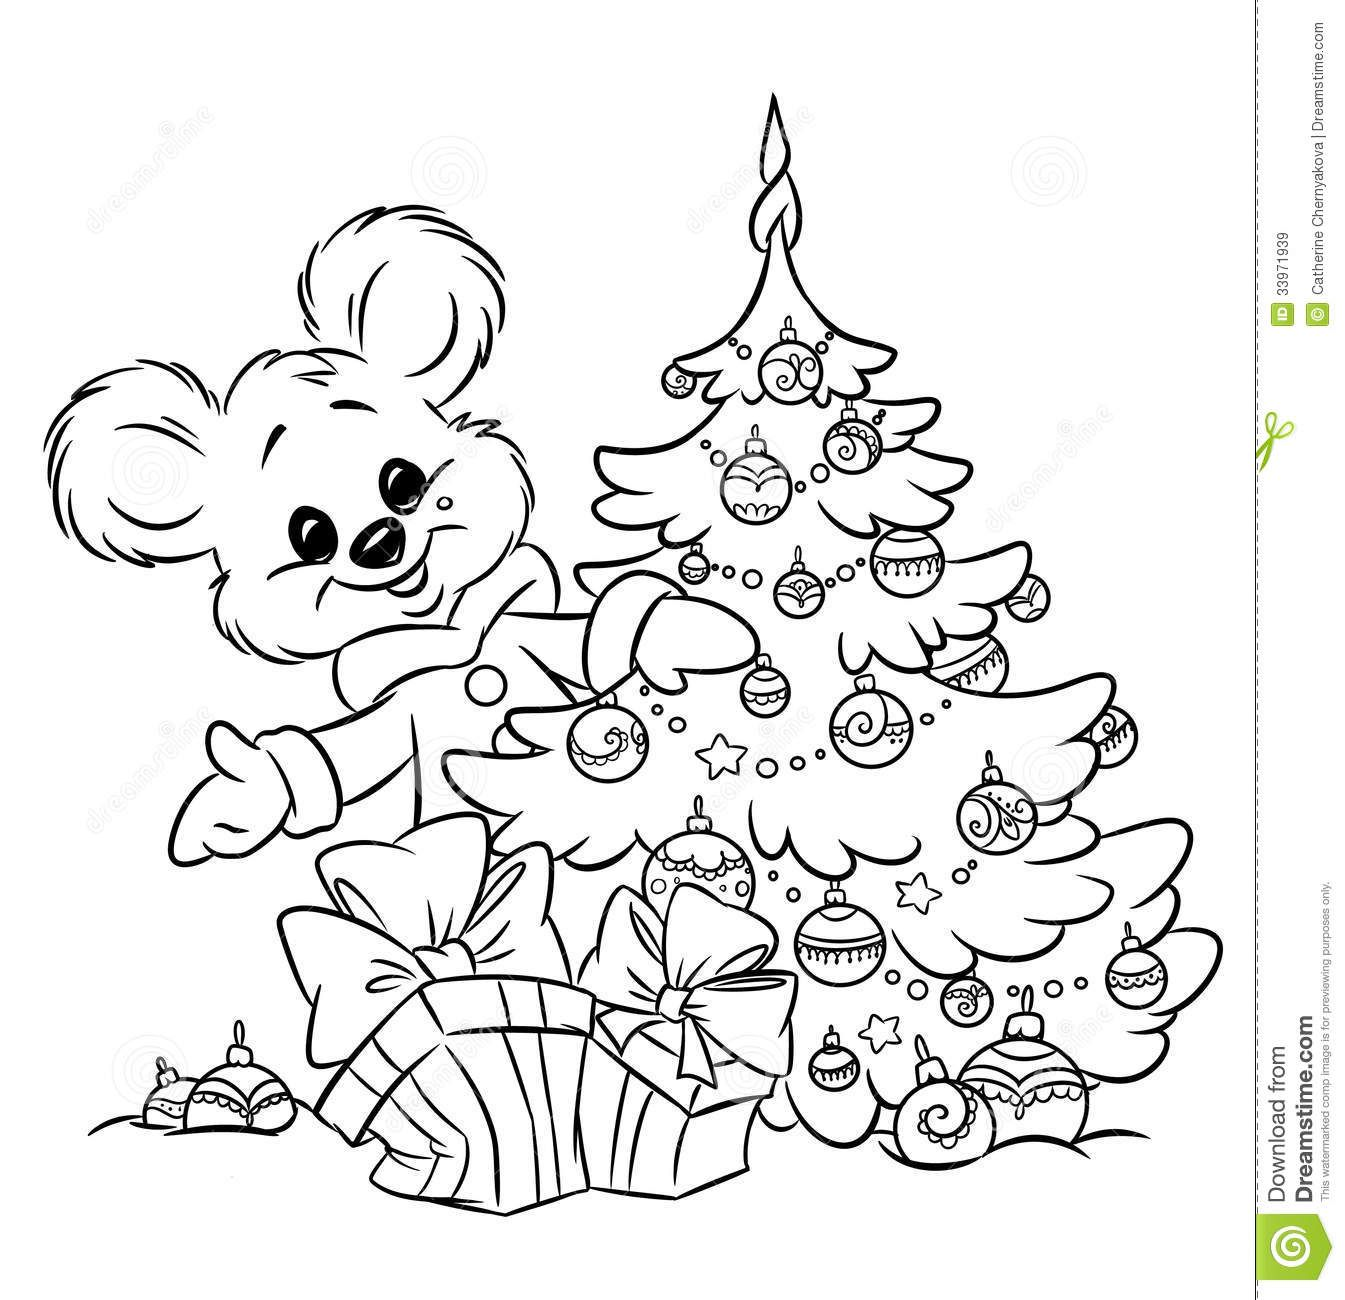 Christmas Ornament Coloring Pages | Christmas Teddy-bear Tree ...